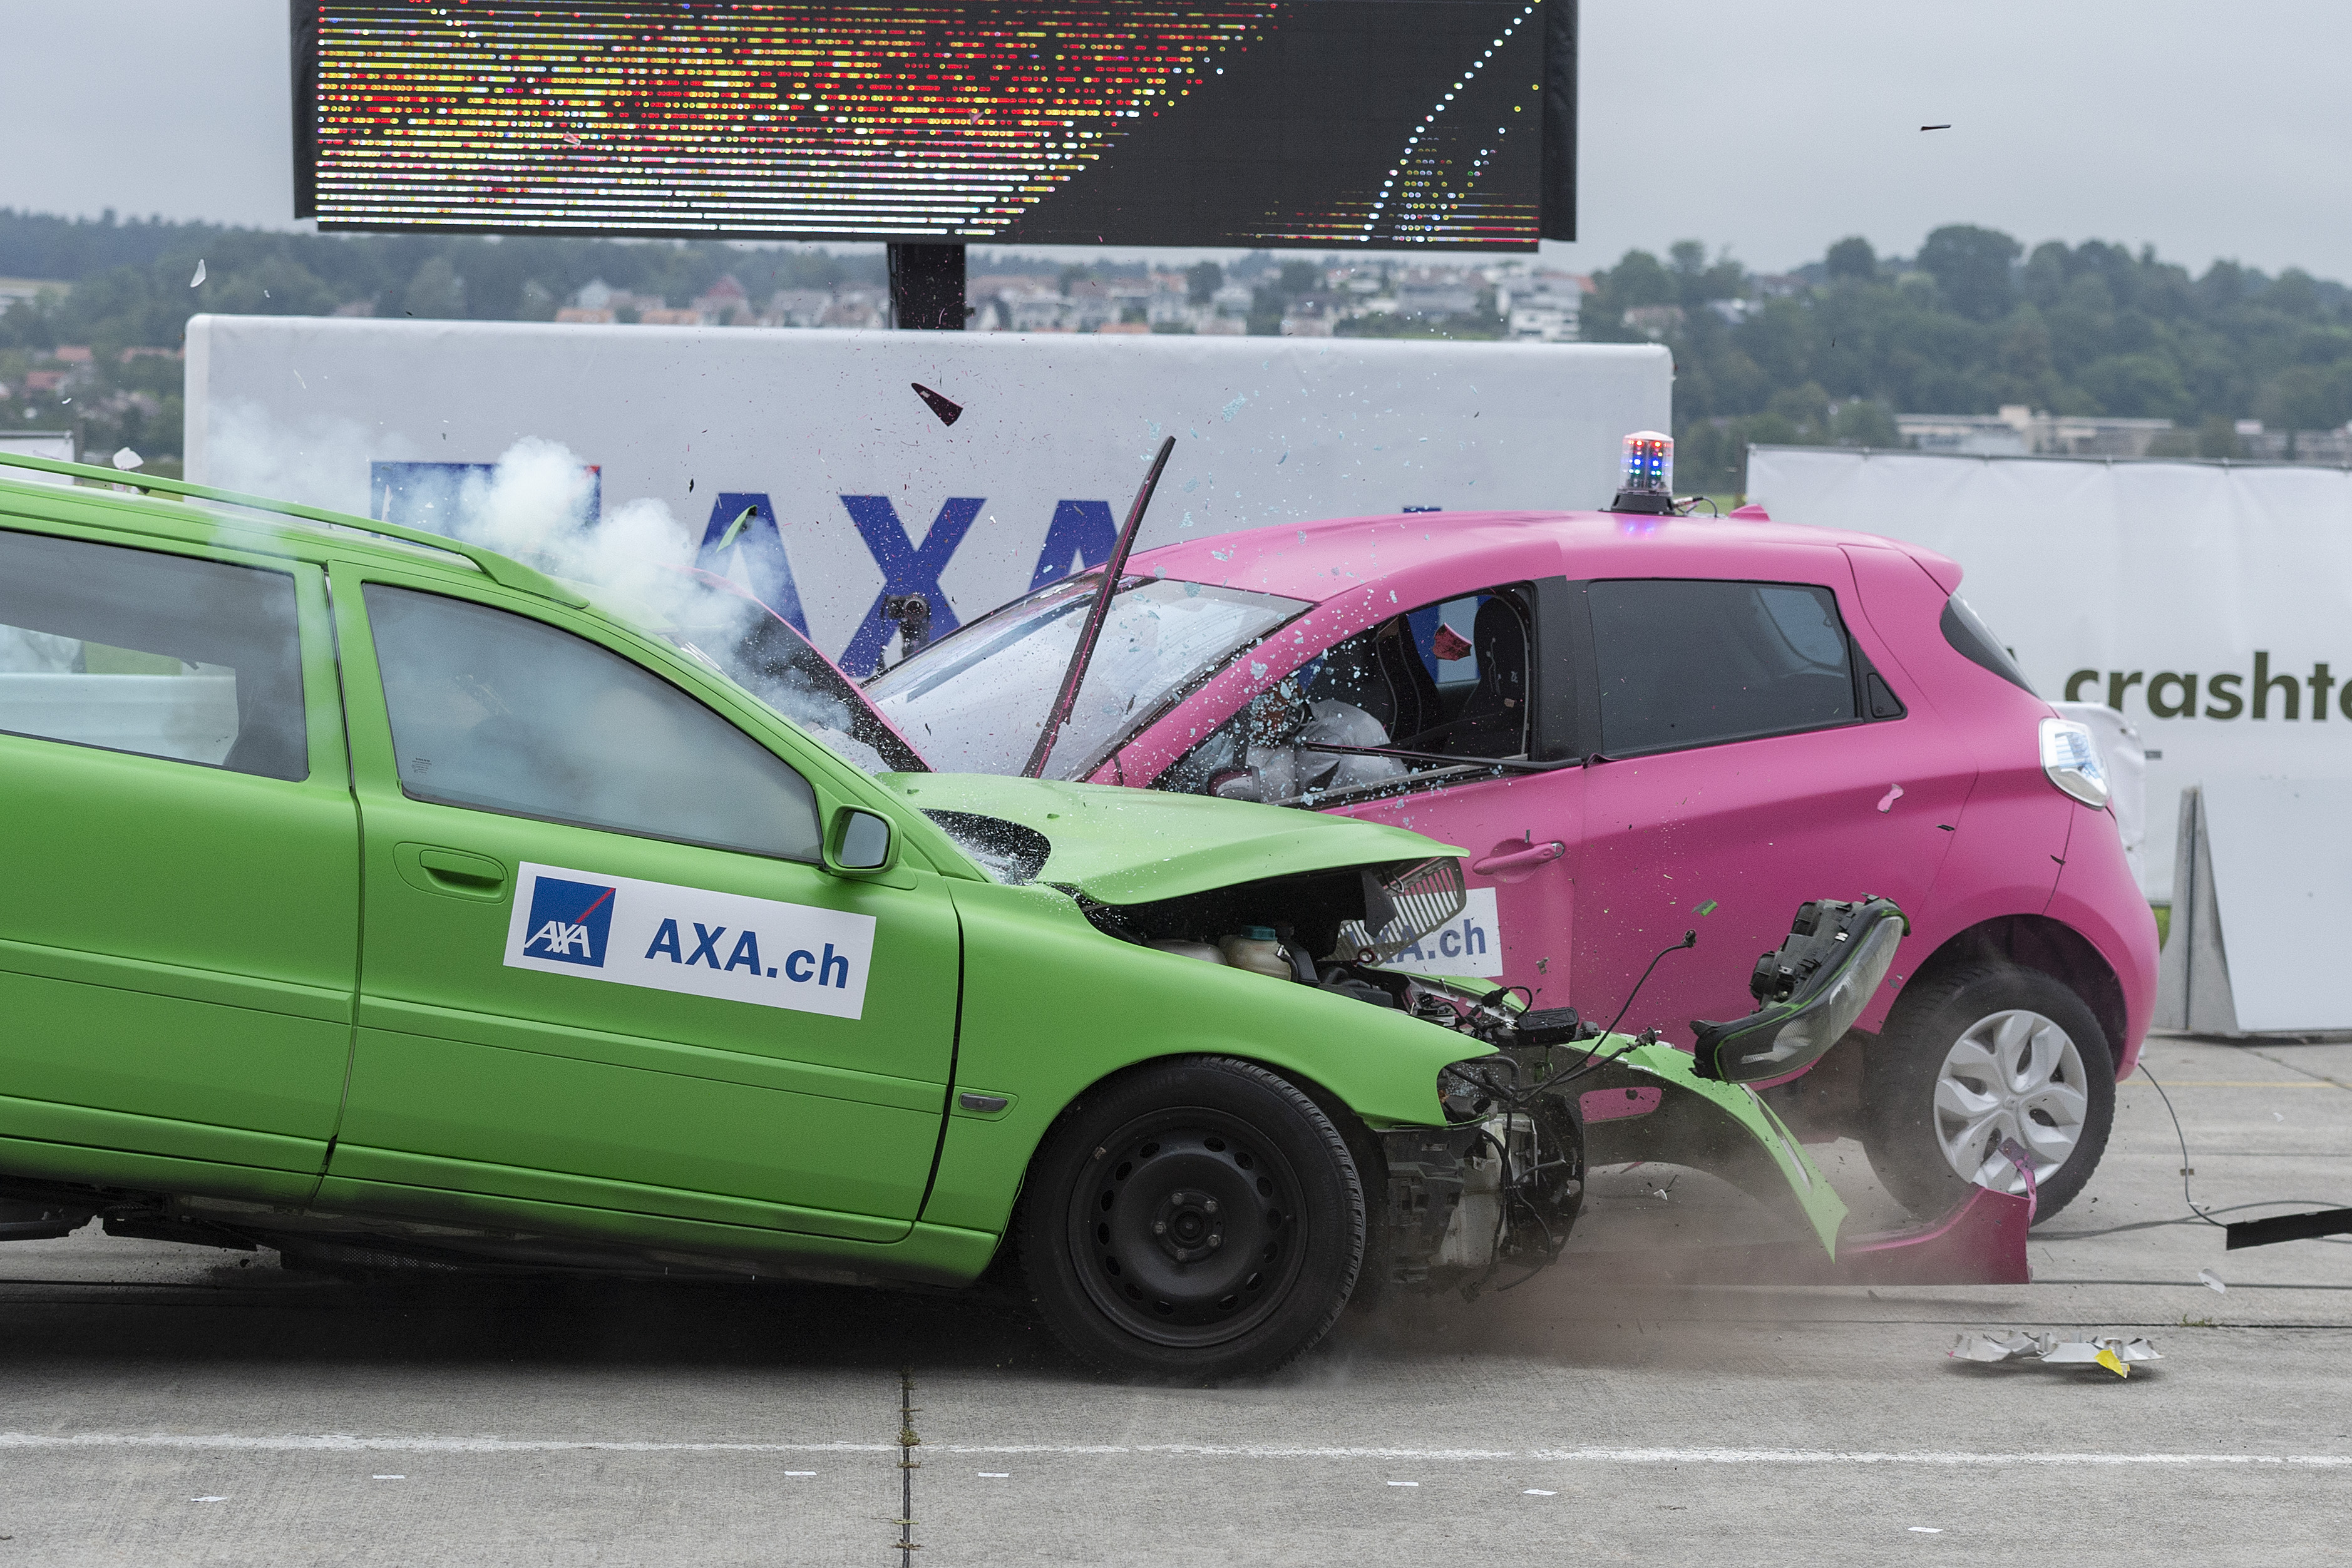 Crashtests 2019: Crash mit E-Auto